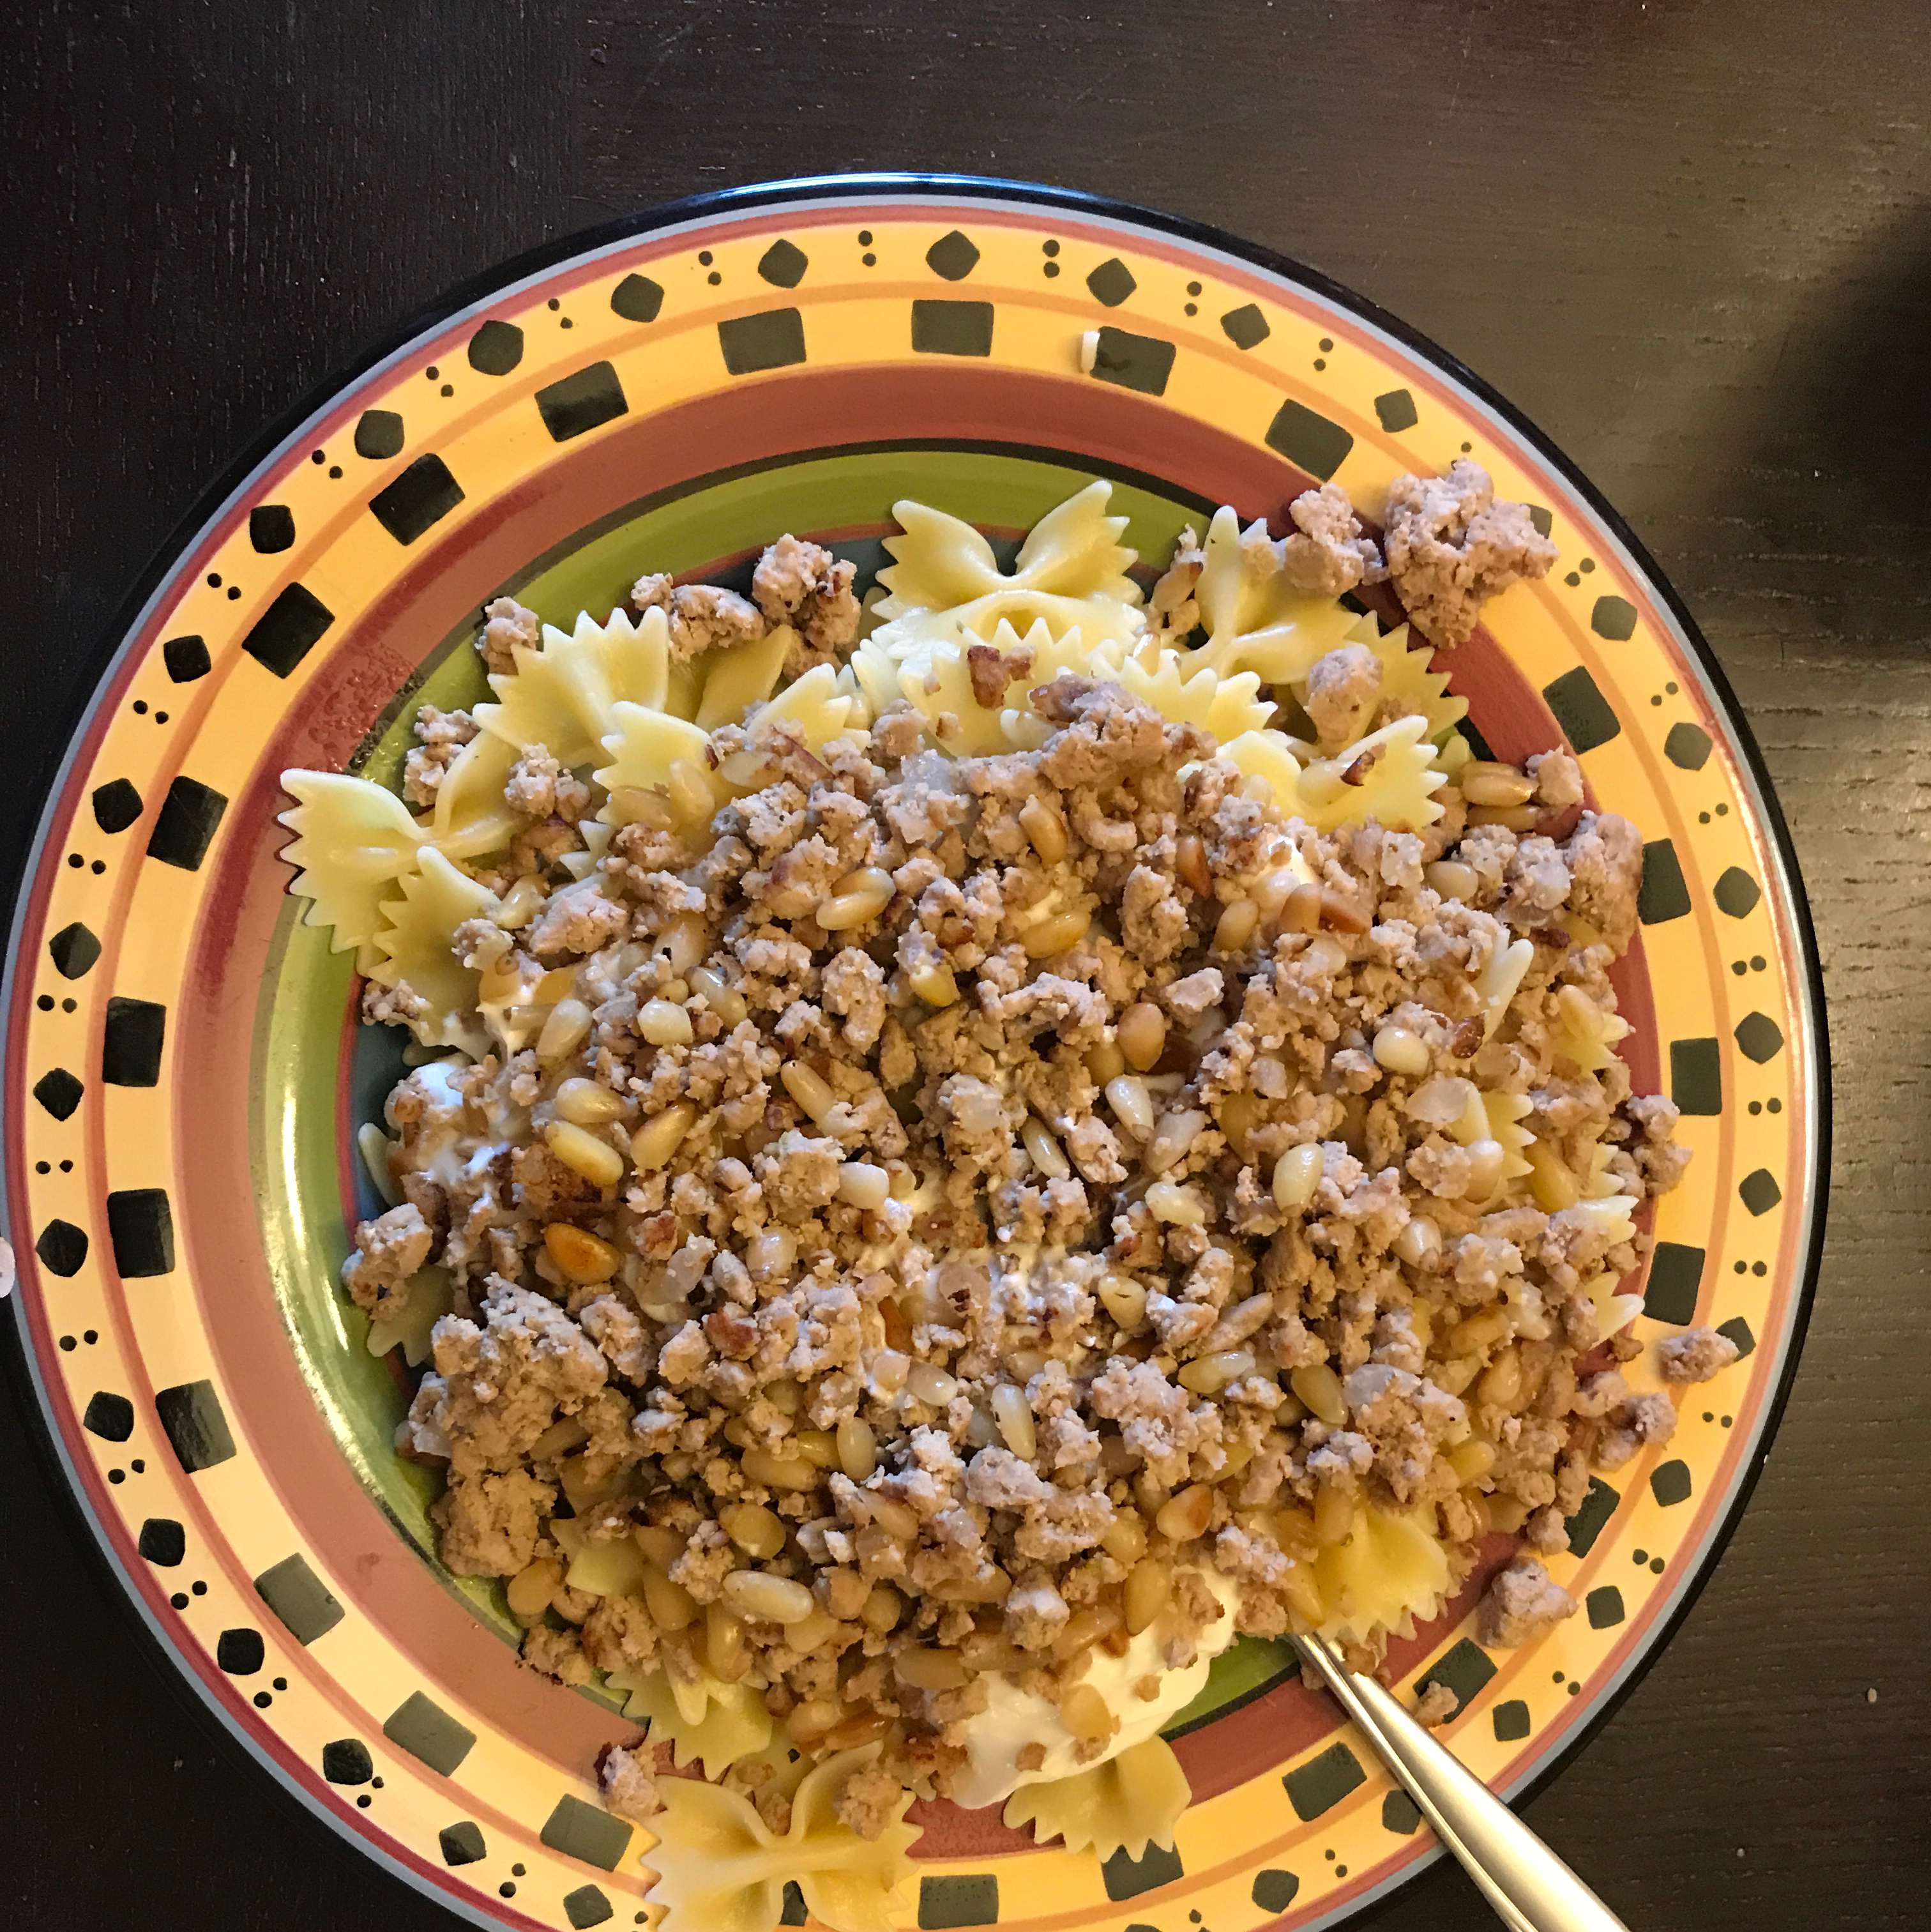 Middle Eastern Pasta With Yogurt and Pine Nuts